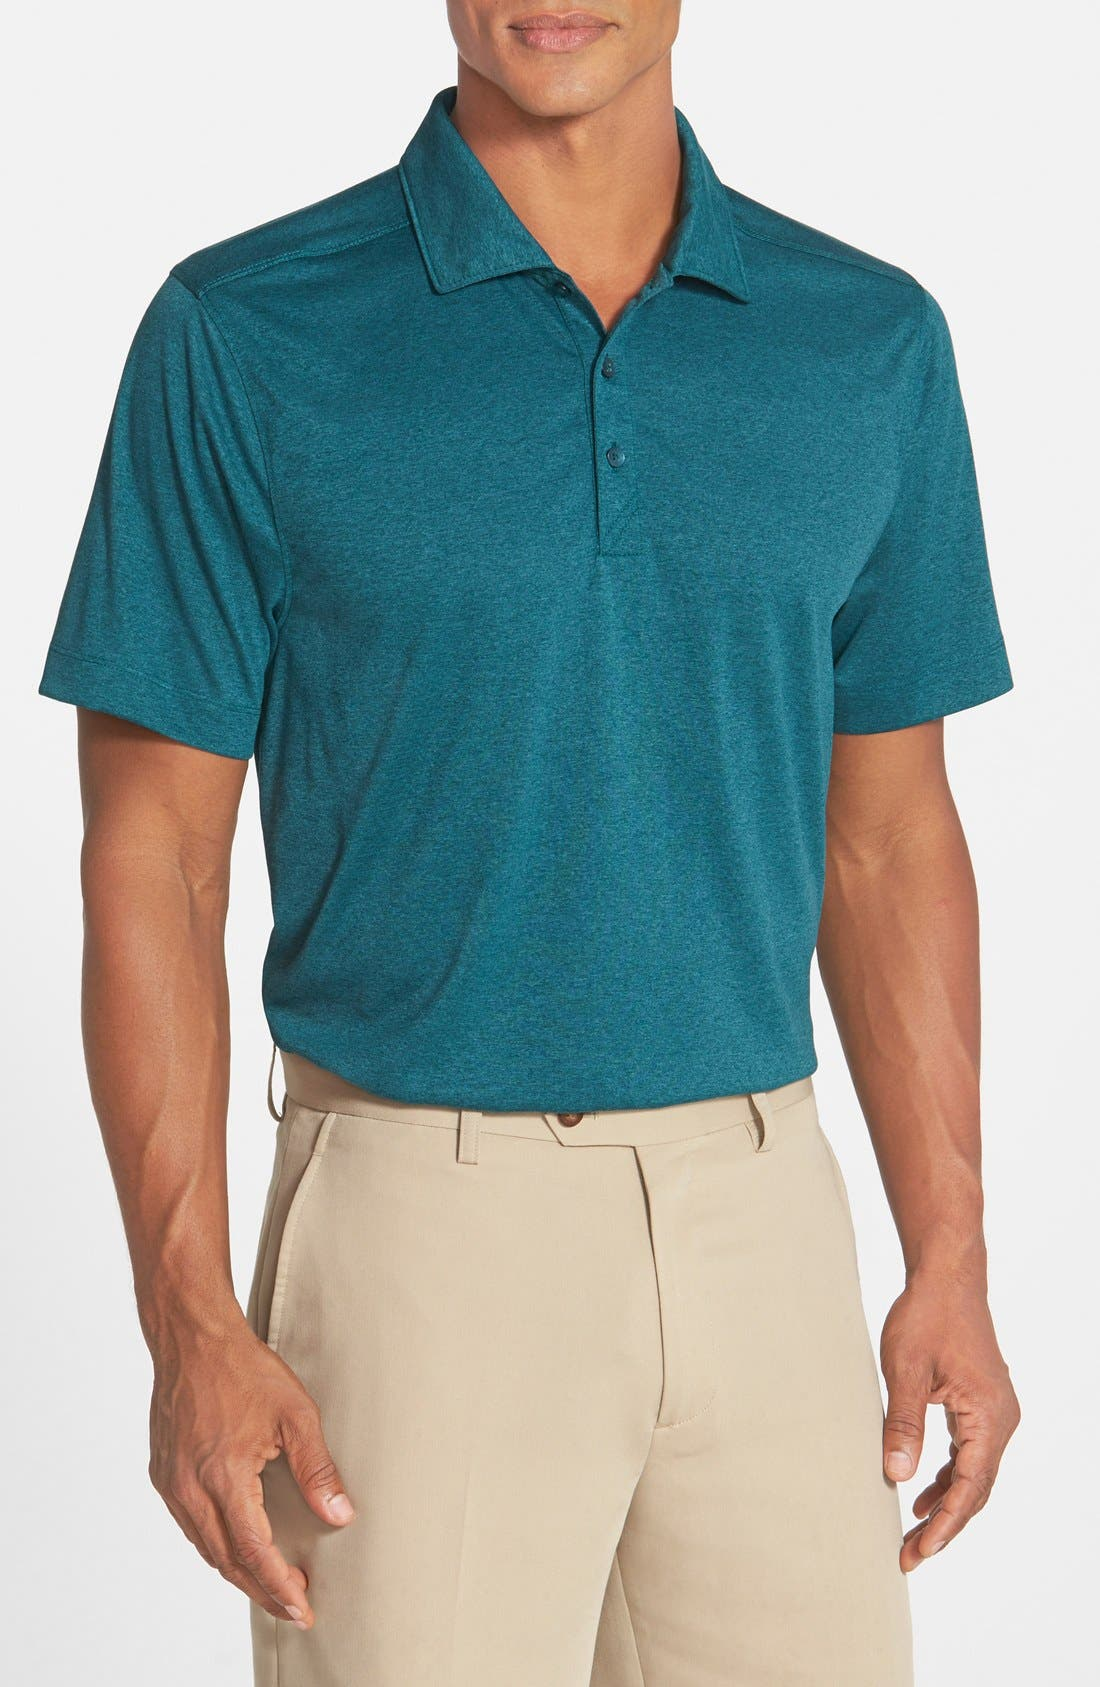 Cutter & Buck 'Chelan' DryTec Polo (Online Only)